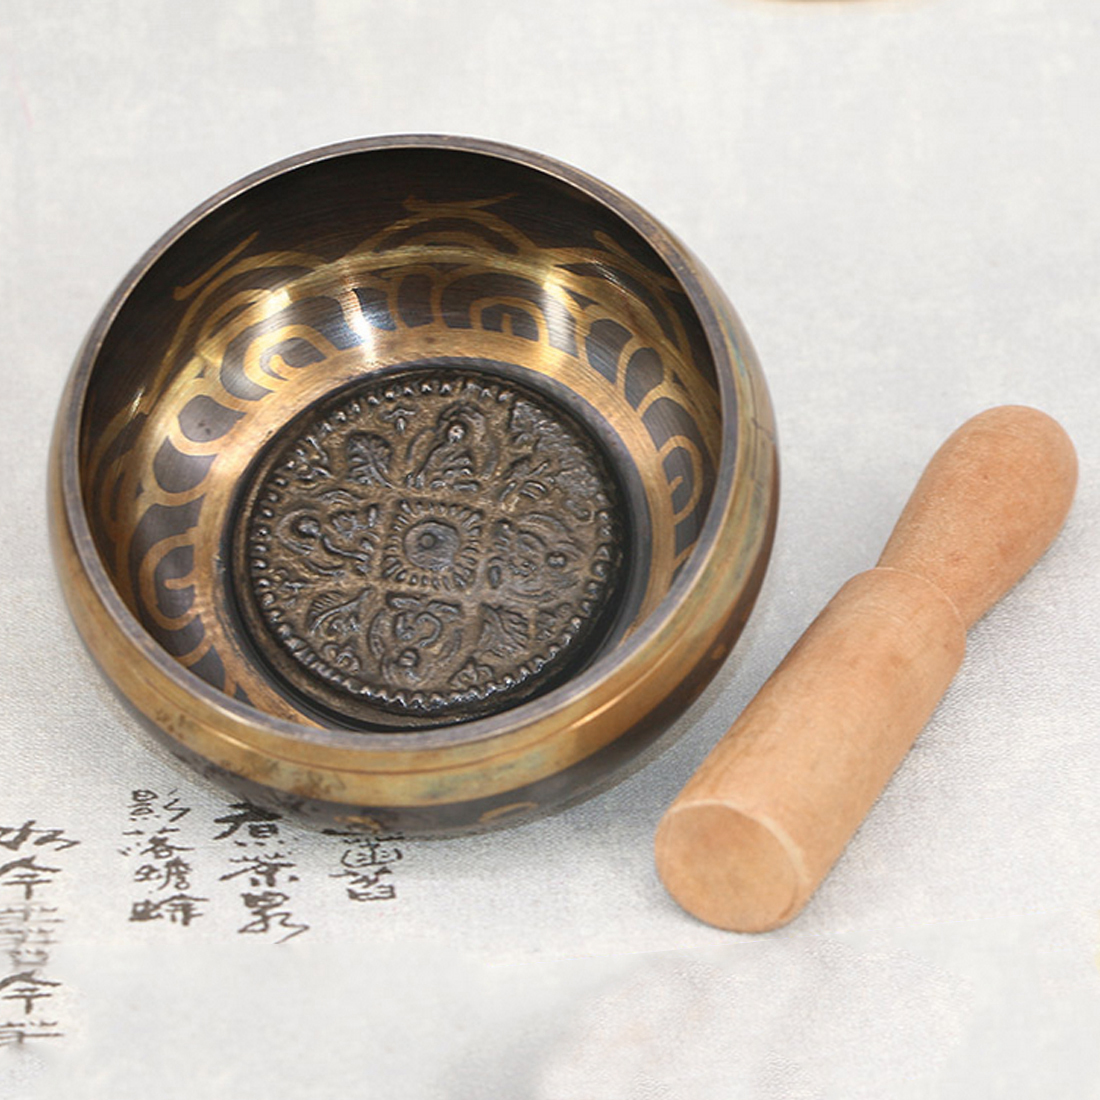 Tibetan Singing Bowl Tibetan Buddhist Brass Yoga Singing Bowl Meditation Wall Dishes Home Decoration